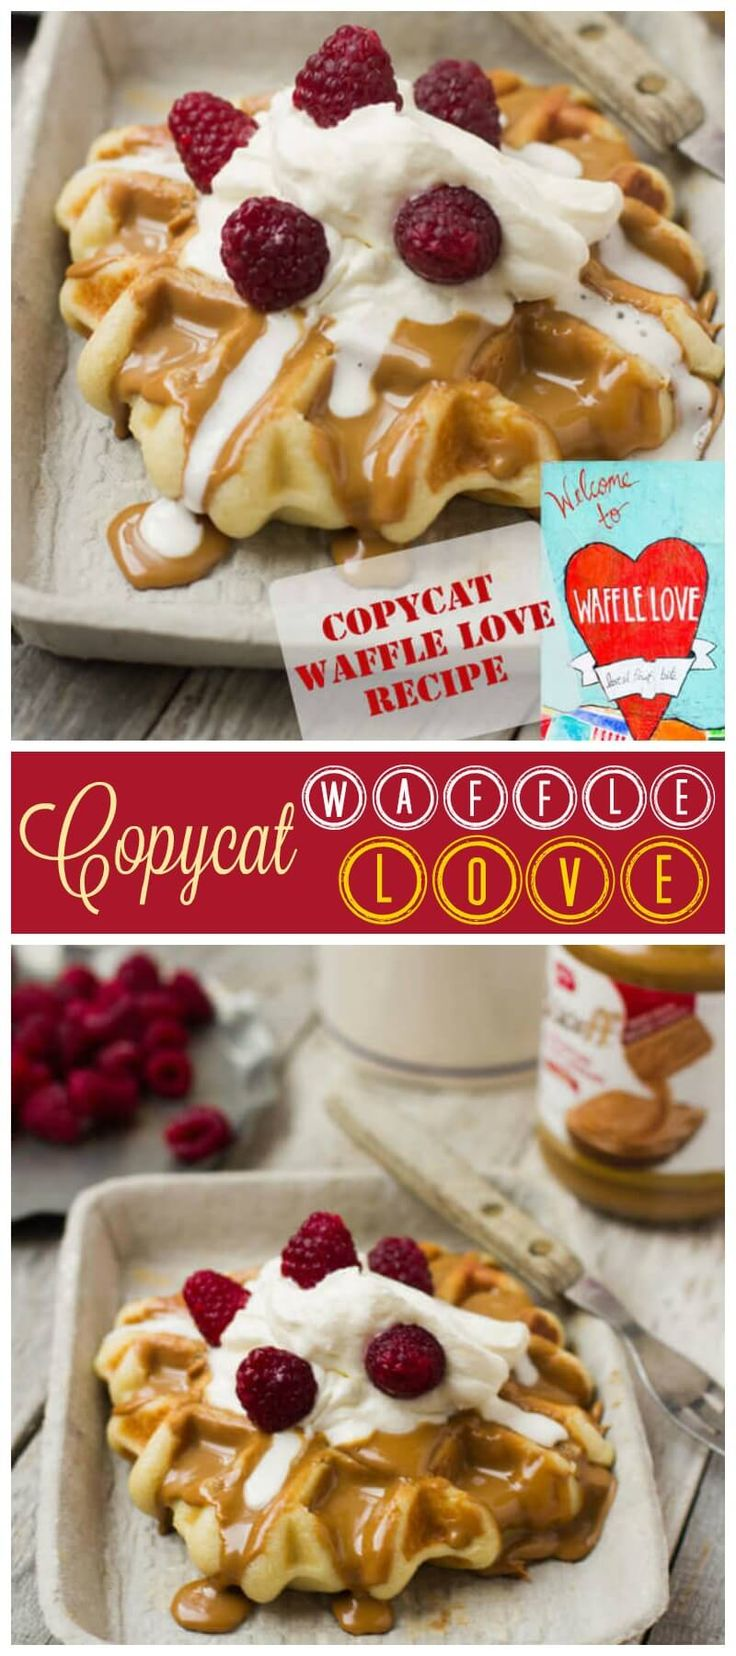 This Copycat Waffle Love Liege Waffle Recipe is the closest we've found to our favorite food truck waffles here in Utah using a Liege waffle.  ohsweetbasil.com